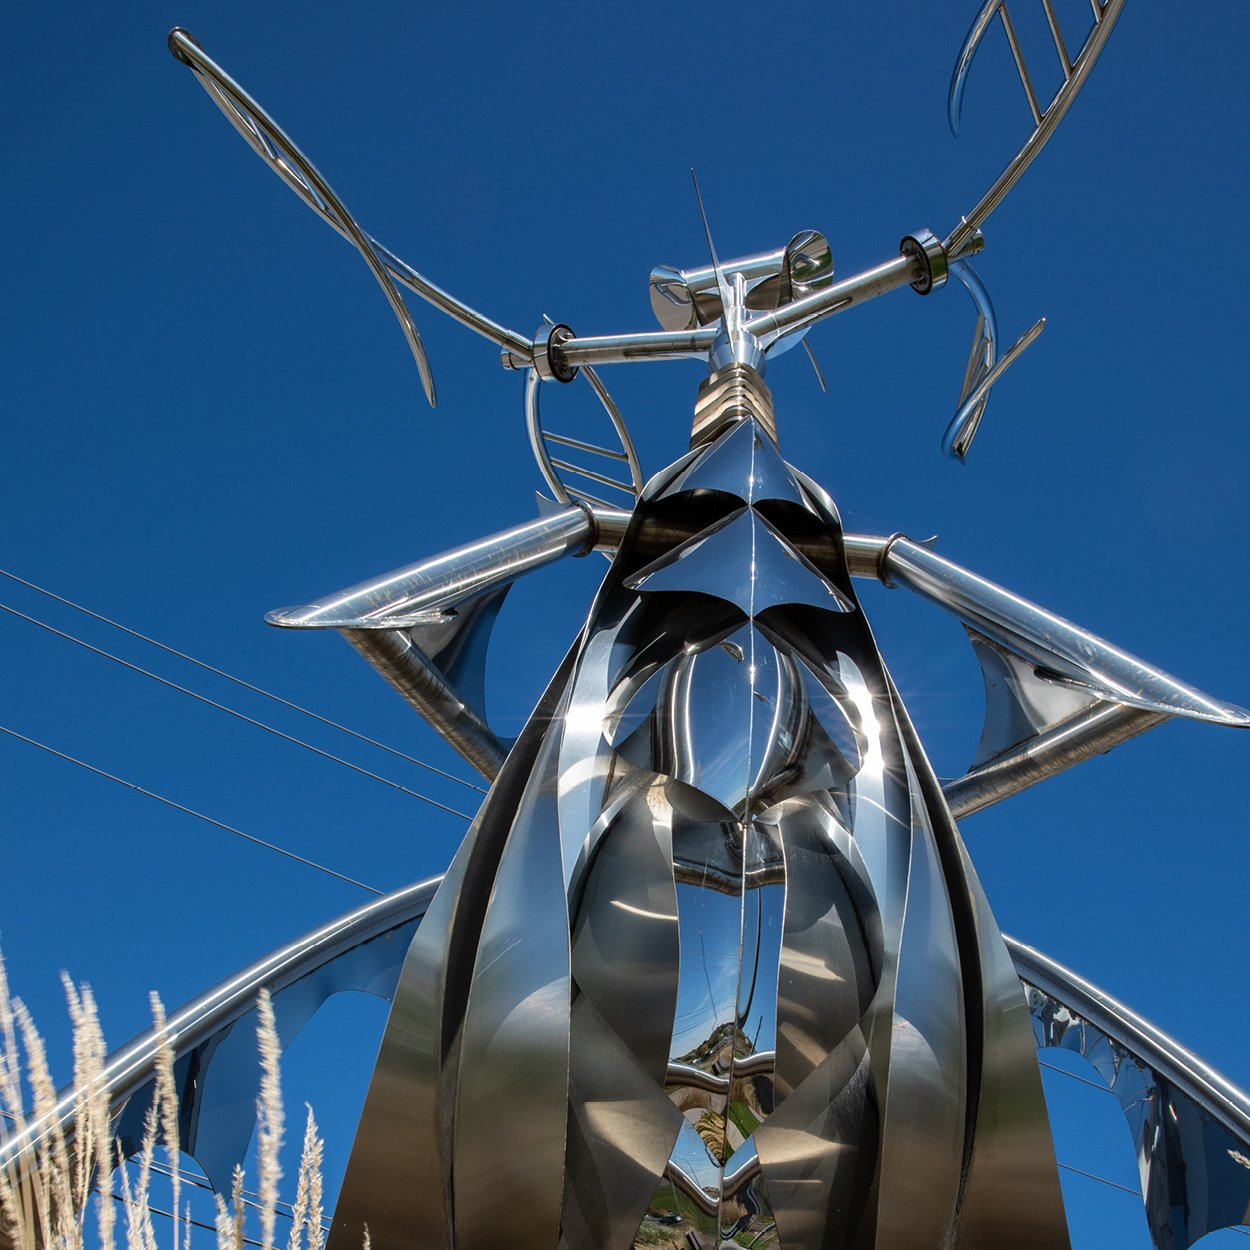 Large metal sculpture with blue sky